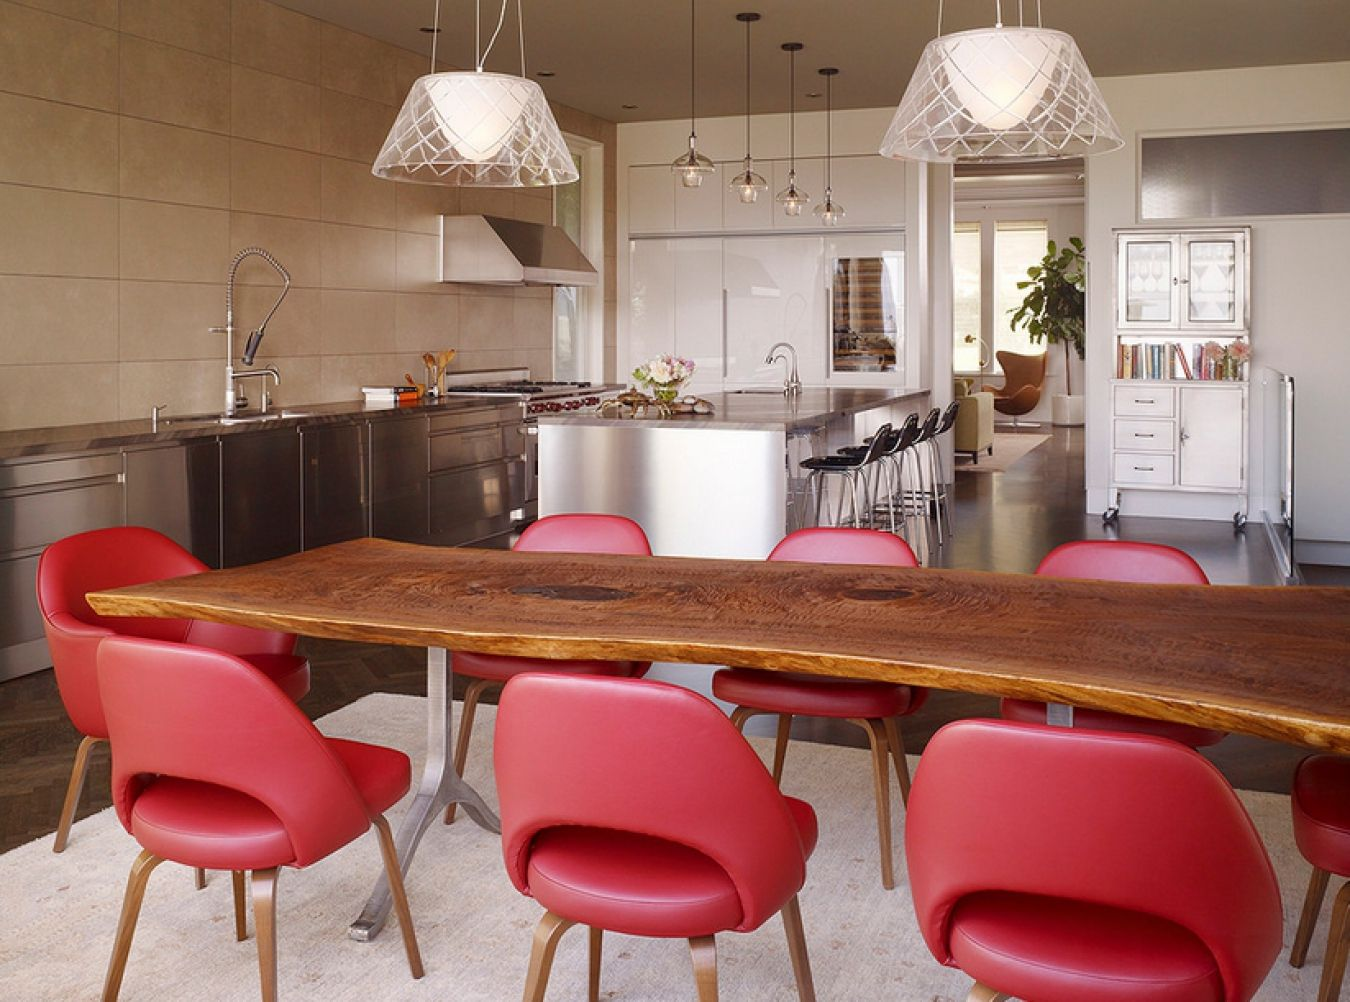 100 Kitchen Chairs Design Ideas. Red soft leather seats